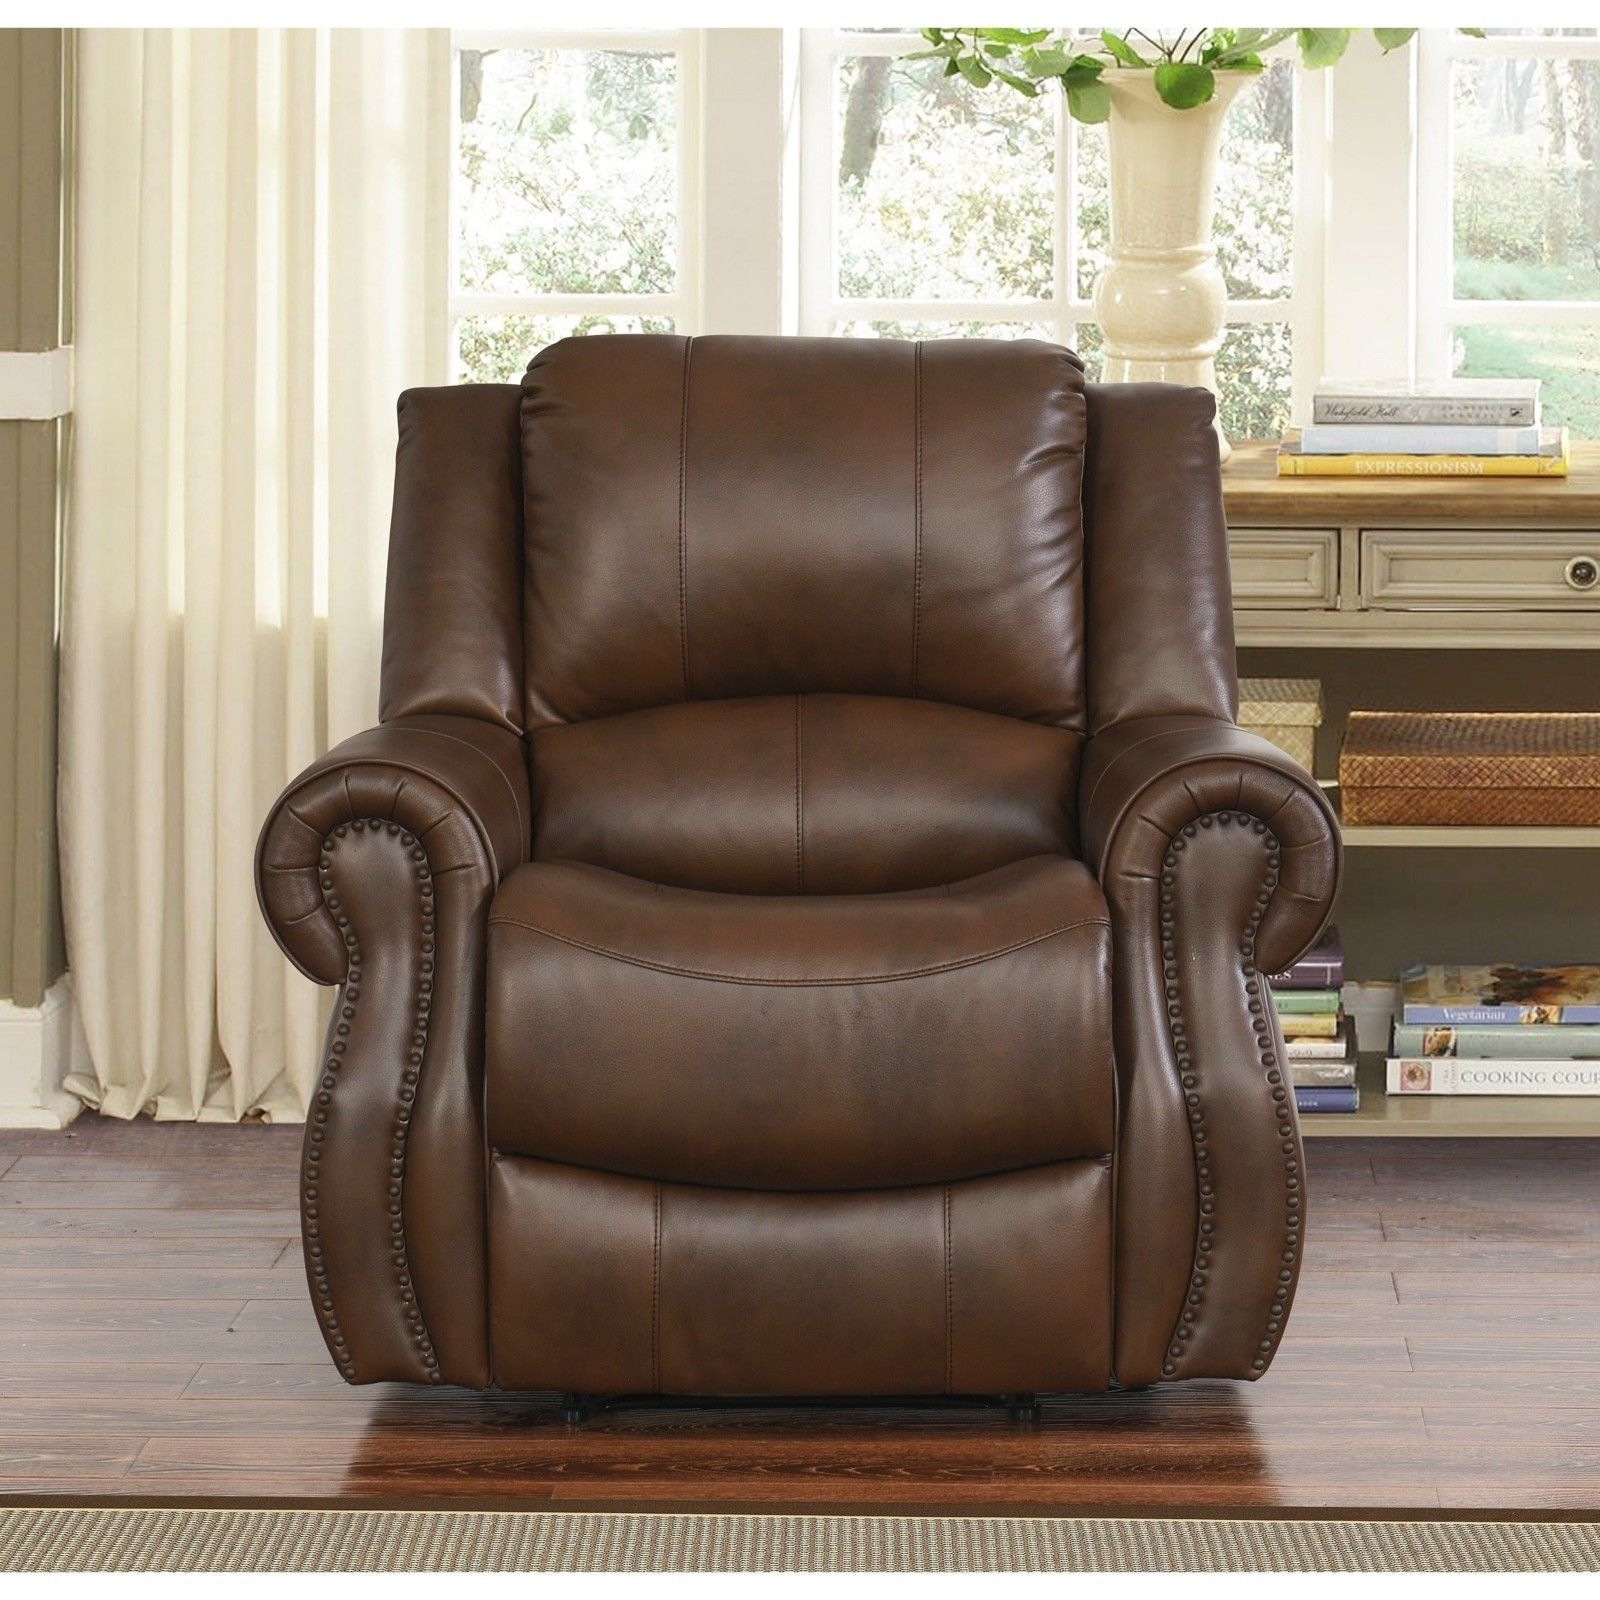 kurtis recliner adult recliners collections